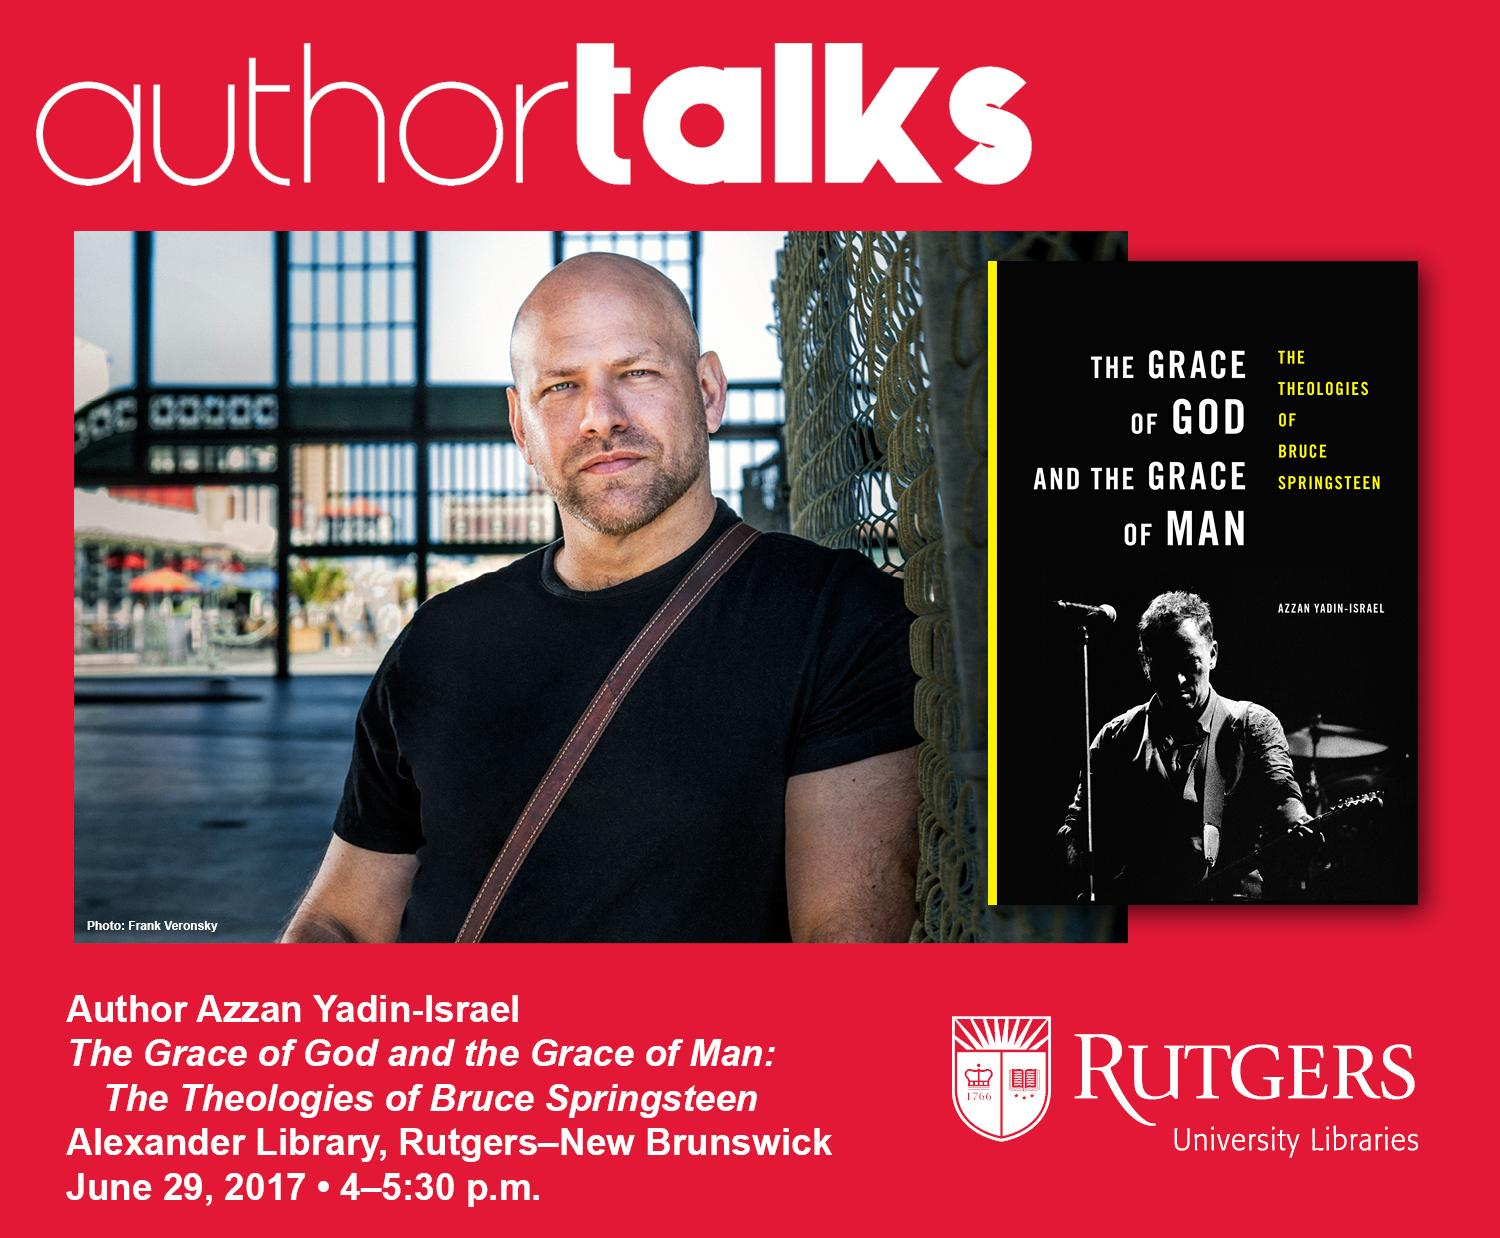 AuthorTalks: The Boss and the Bible